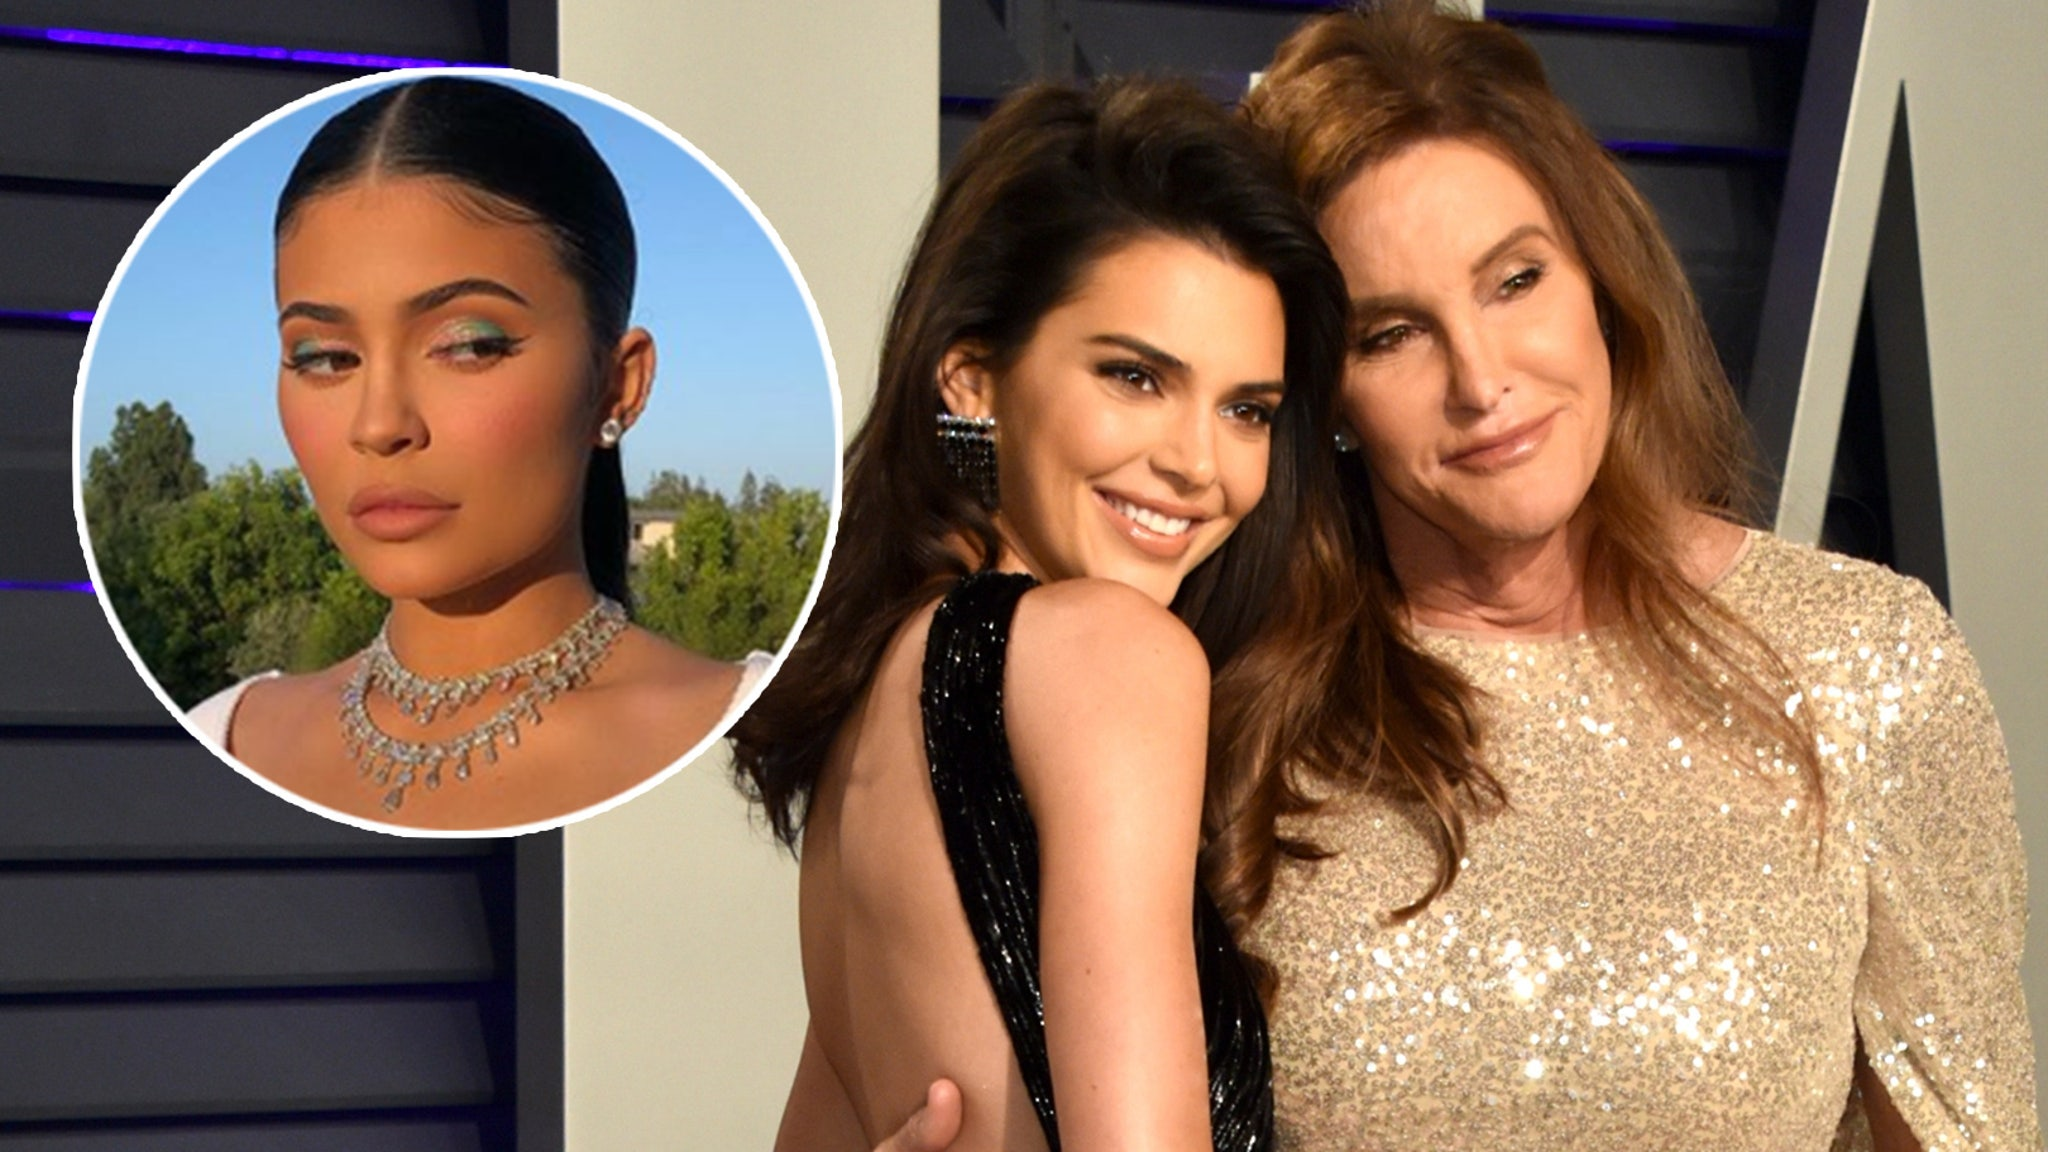 Caitlyn Jenner Mistakenly Posts Photo Of Kendall Jenner For Kylie